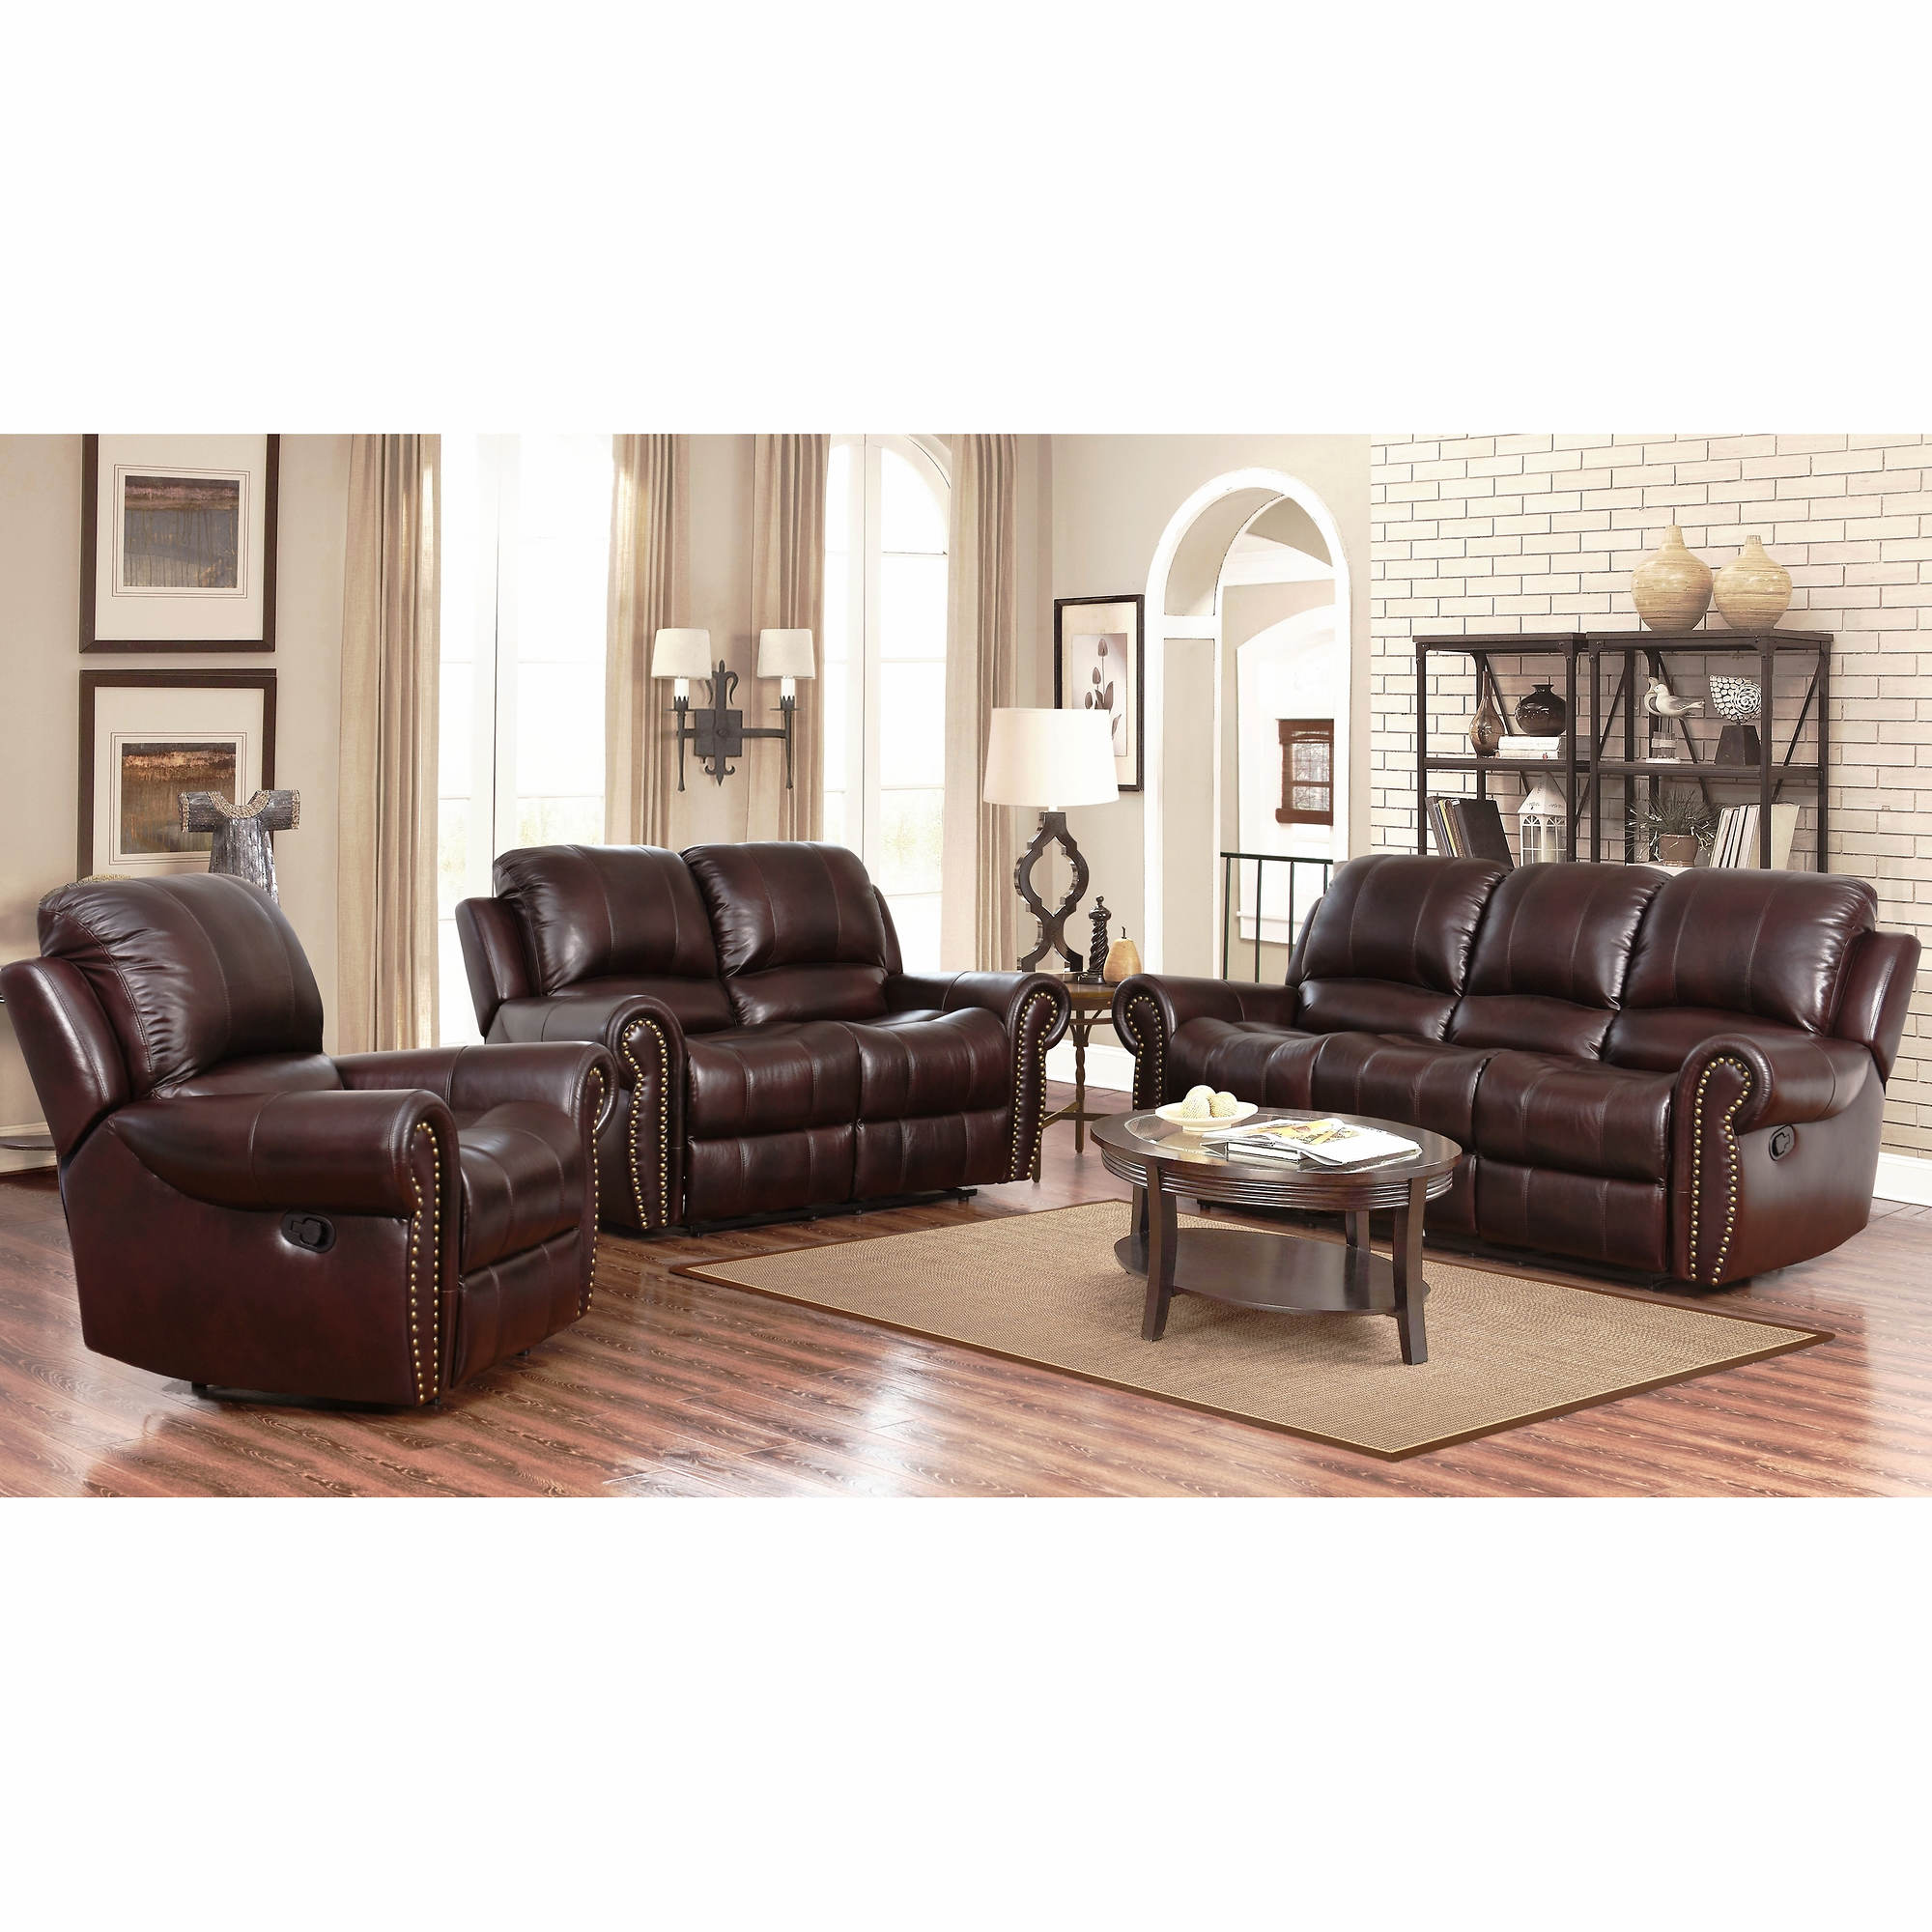 Abbyson Living Berkshire 3 Pc Leather Reclining Furniture